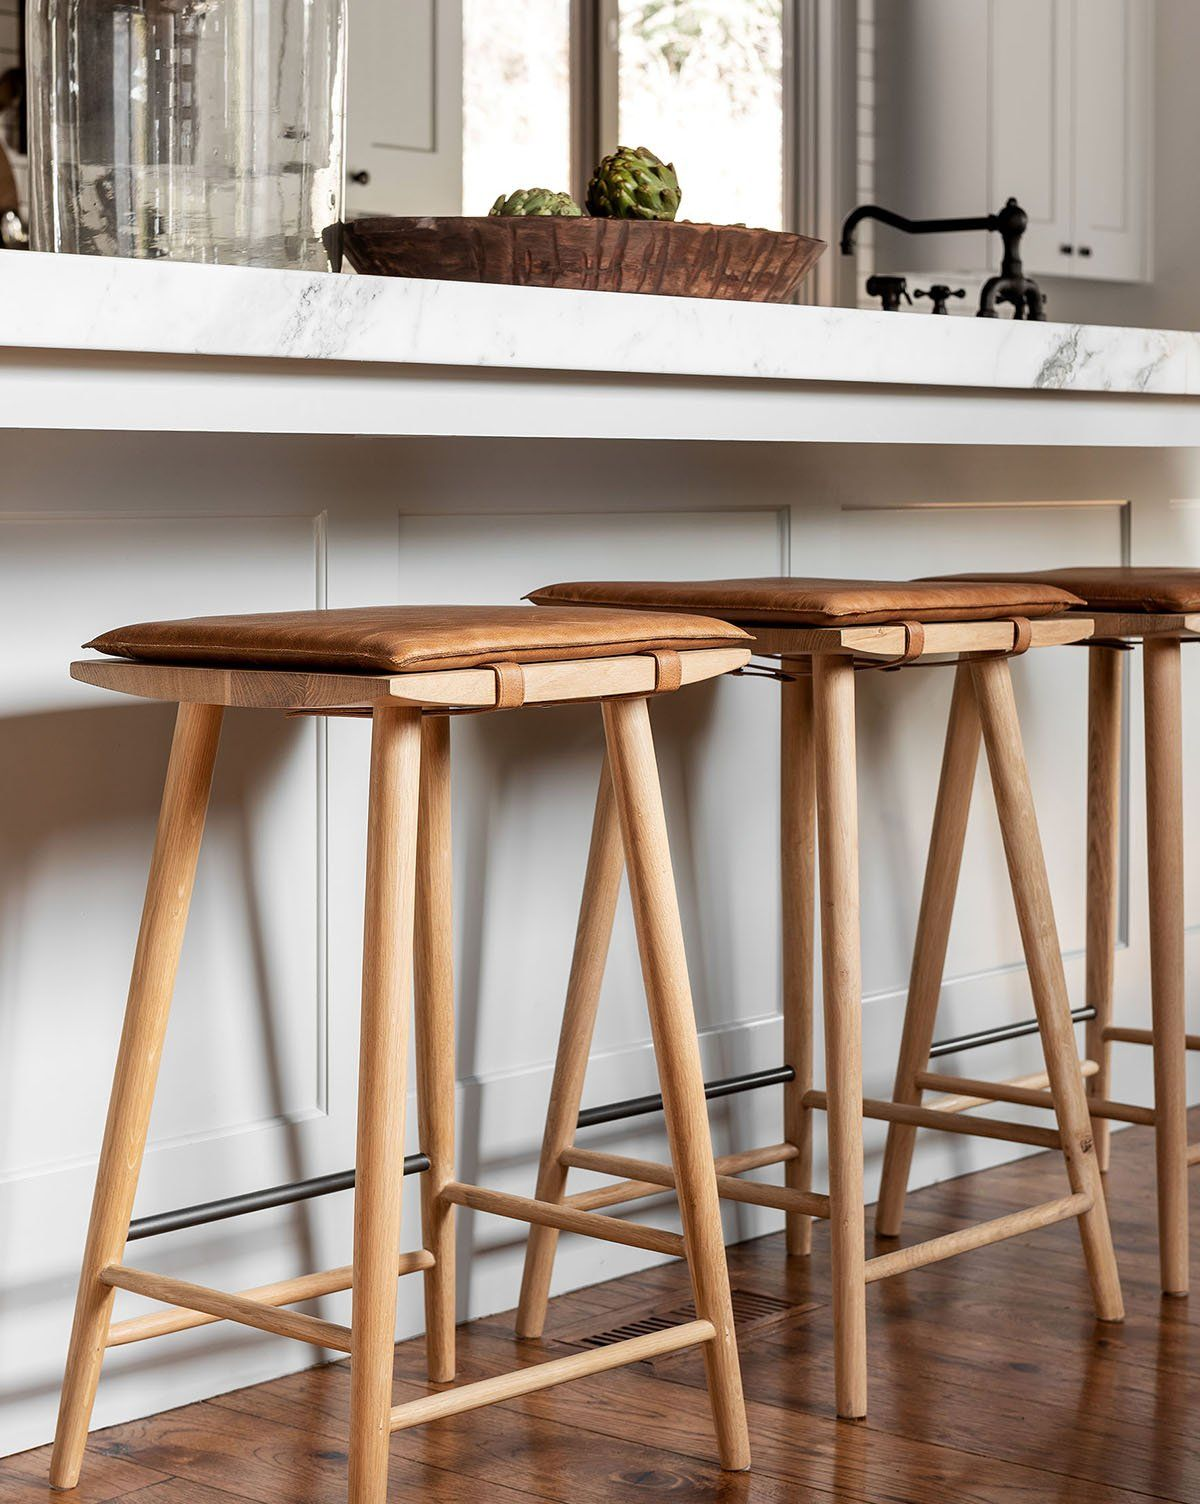 Beau Counter Stool In 2021 Counter Stools Counter Stools Backless Wood Counter Stools